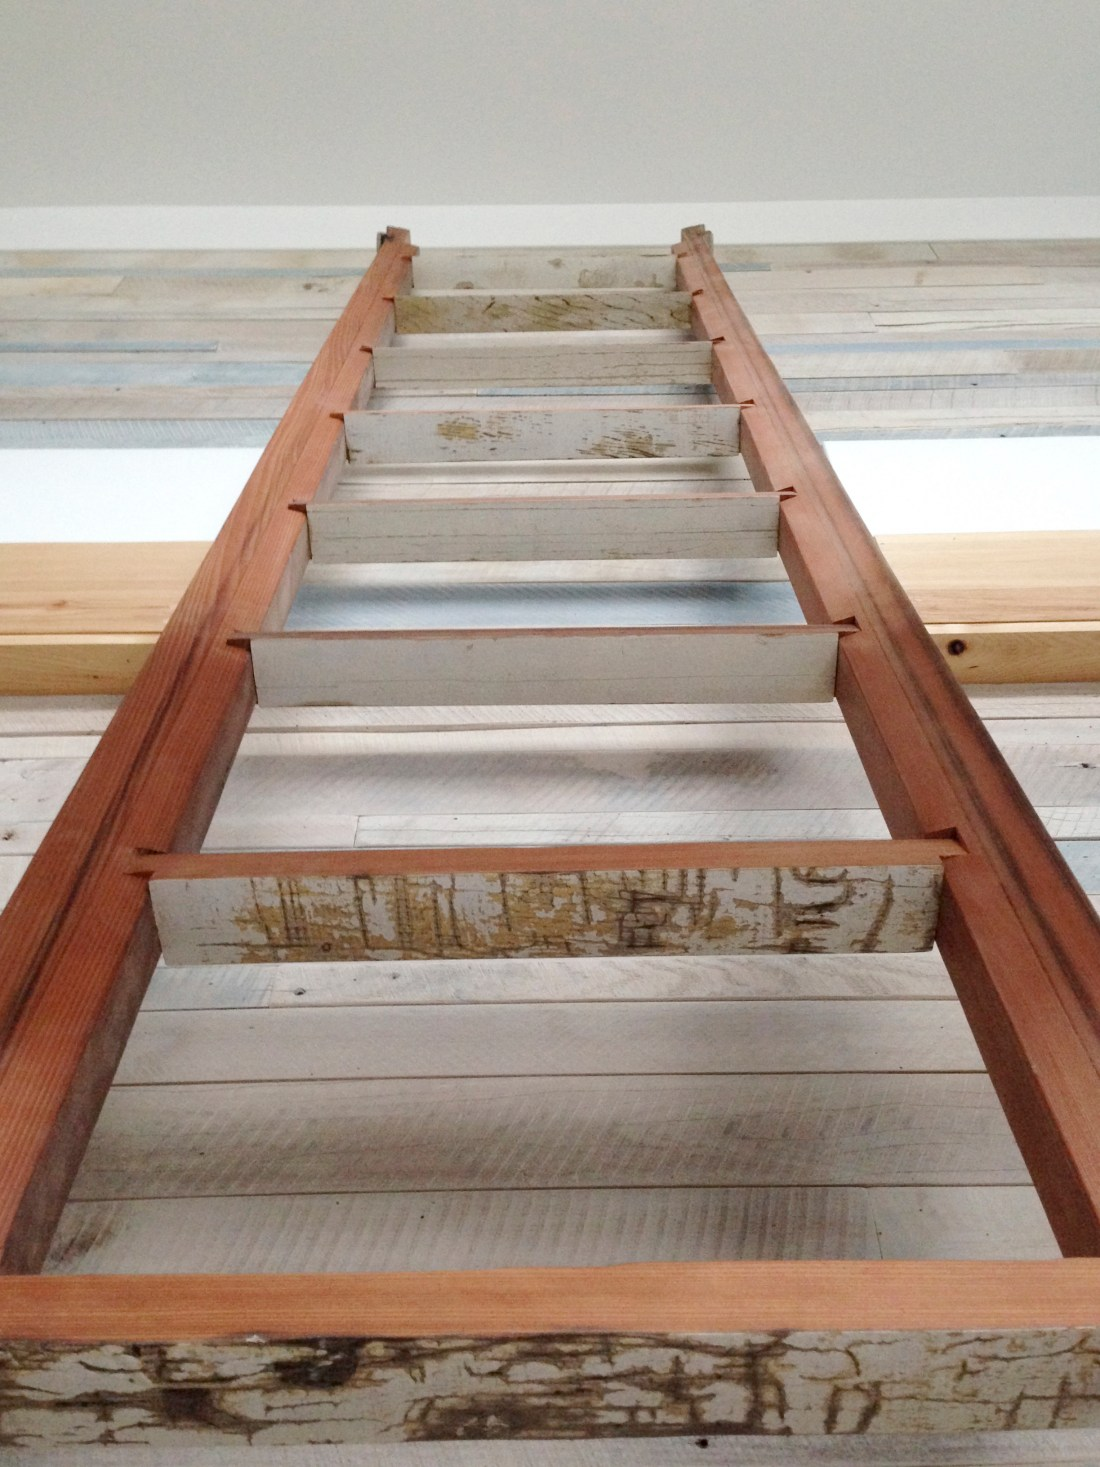 reclaimed red wood to produce a usable and functional indoor ladder